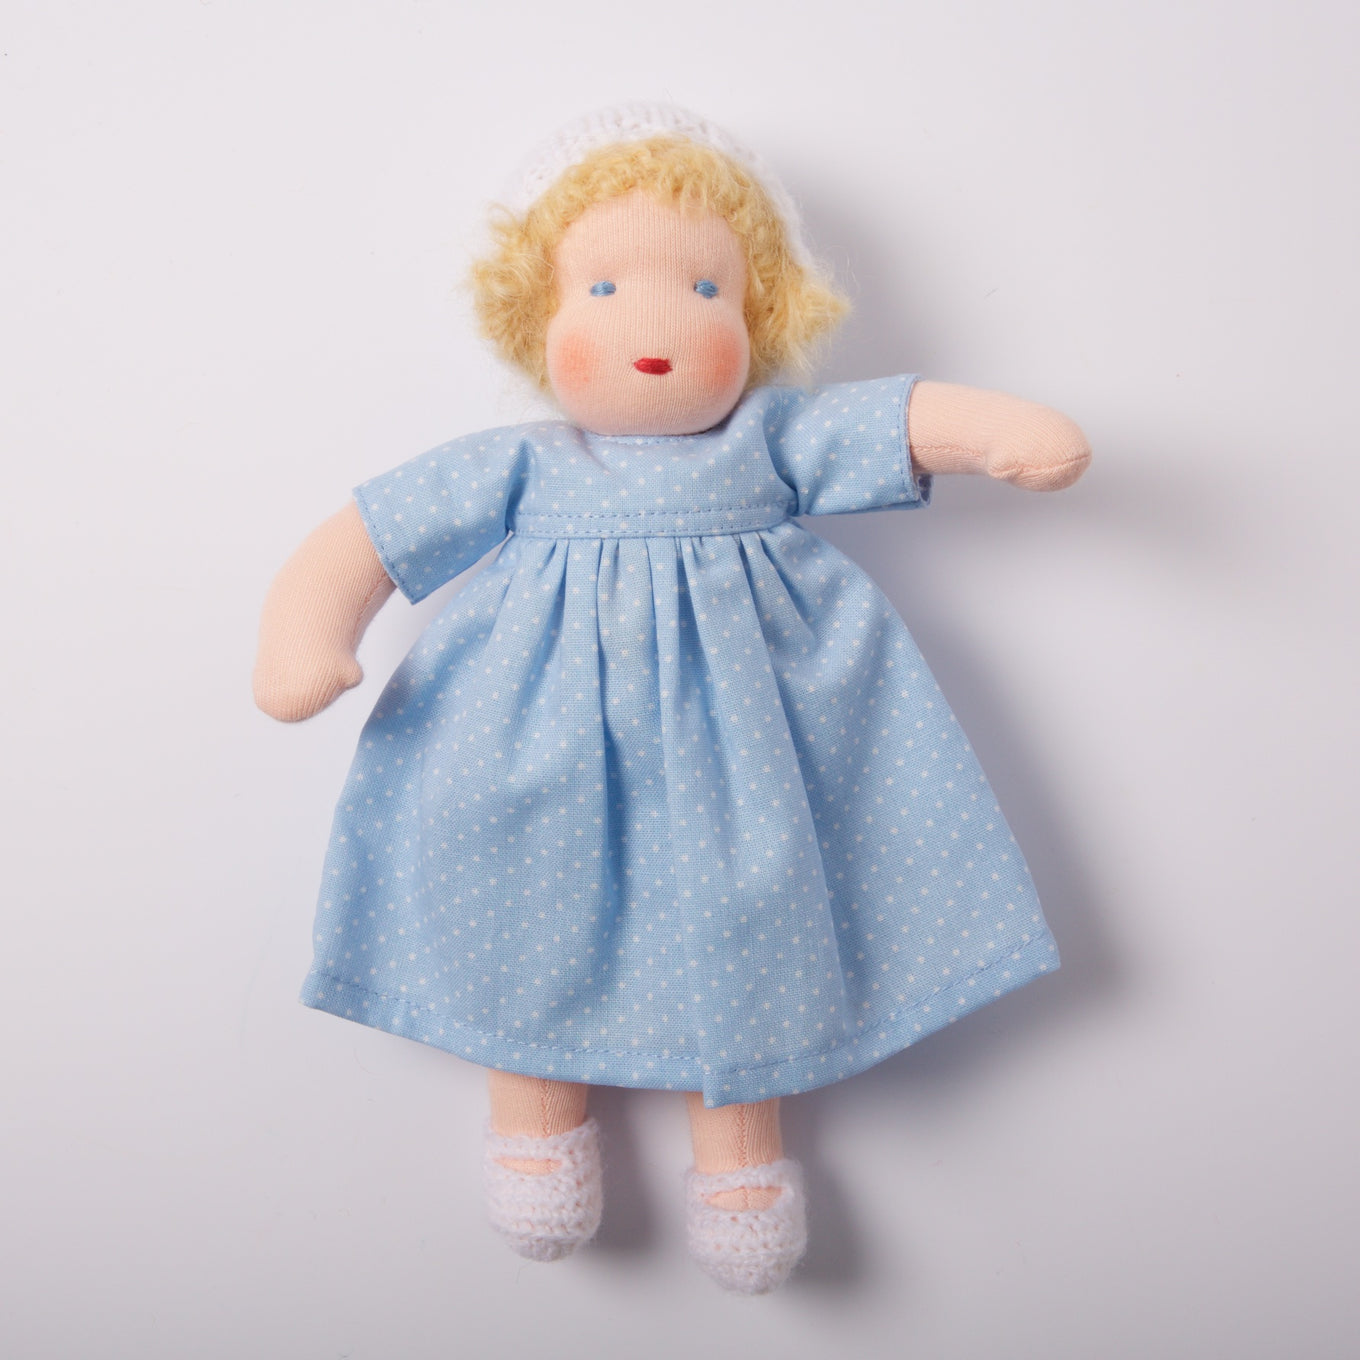 Waldorf Doll Blonde Hair | Blue Dress